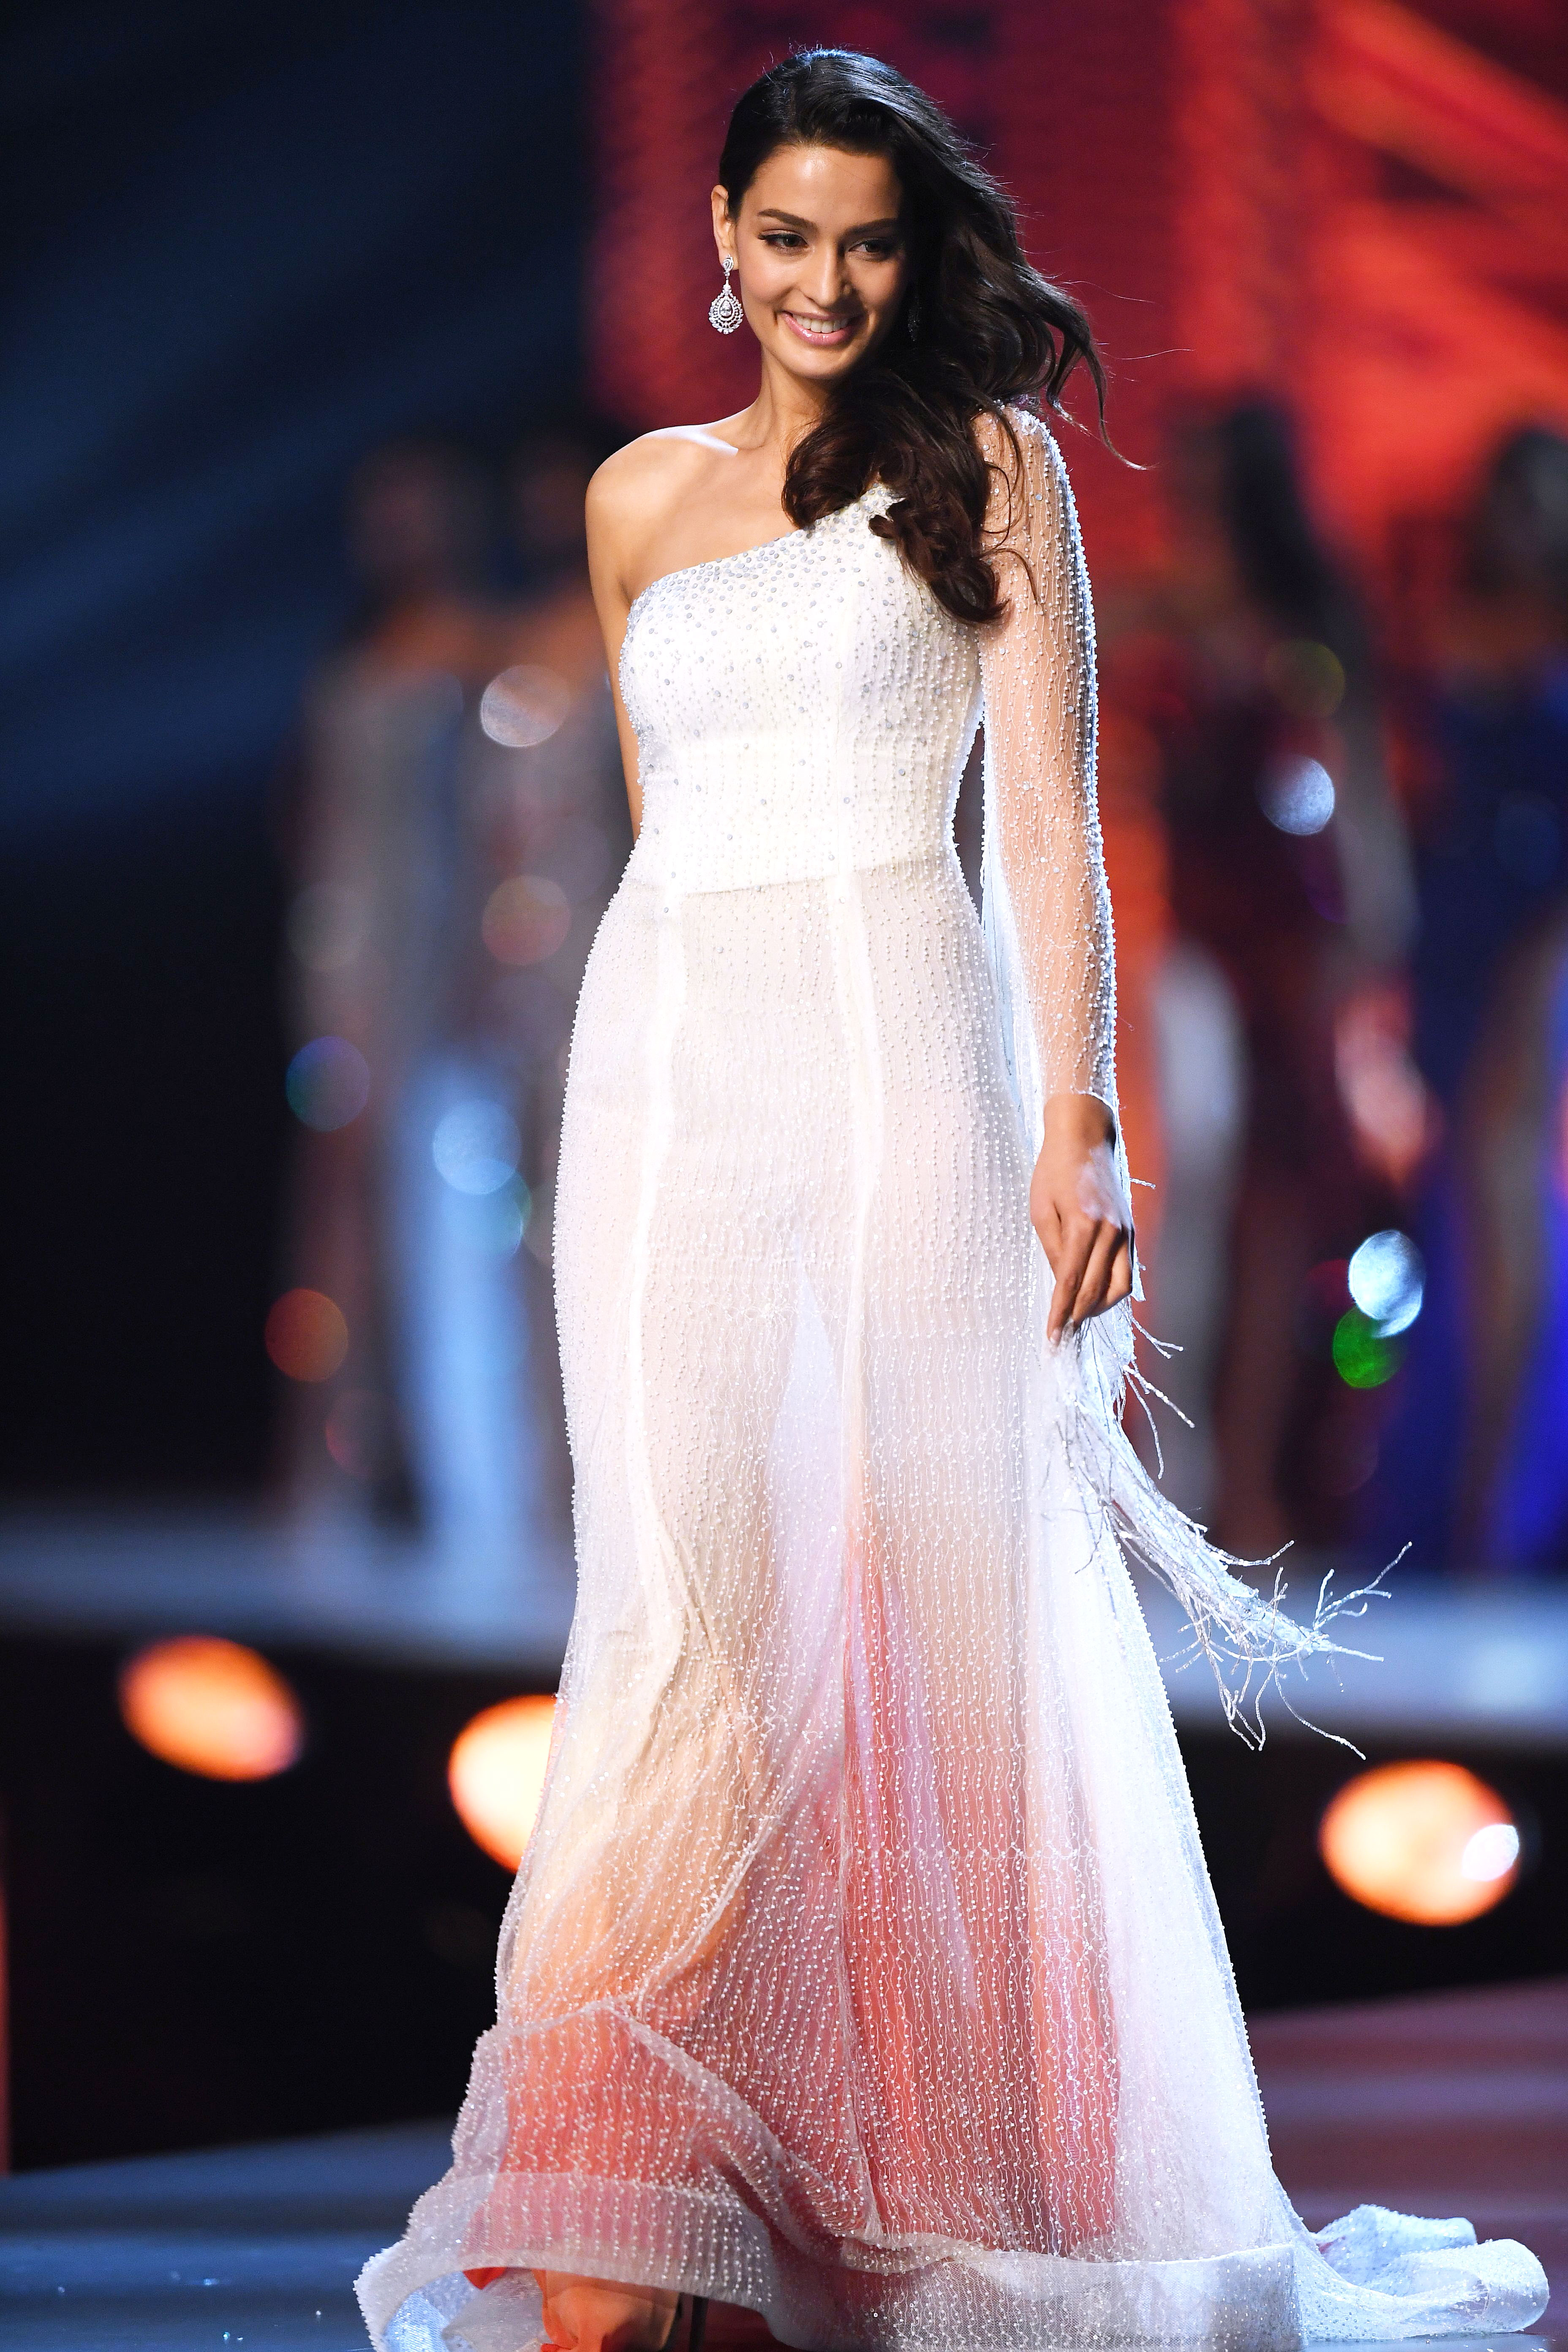 1_Miss-Nepal-Manita-Devkota-miss-universe - In a single-sleeve white dress featuring feathered and beaded accents.